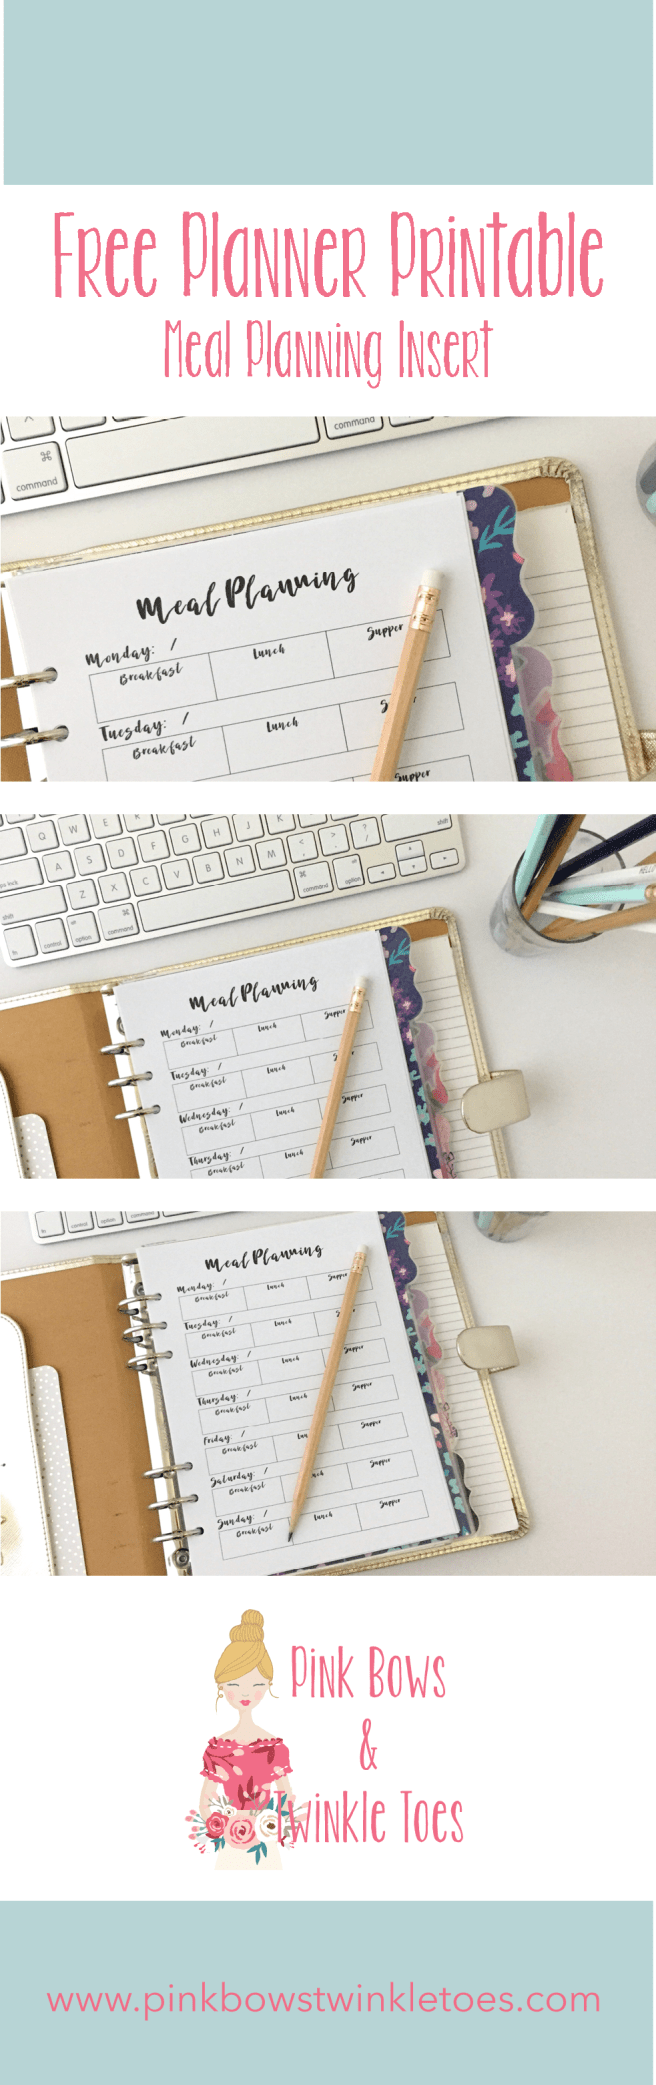 Meal Planning Insert: Free A5 Printable Planner Insert - Pink Bows & Twinkle Toes